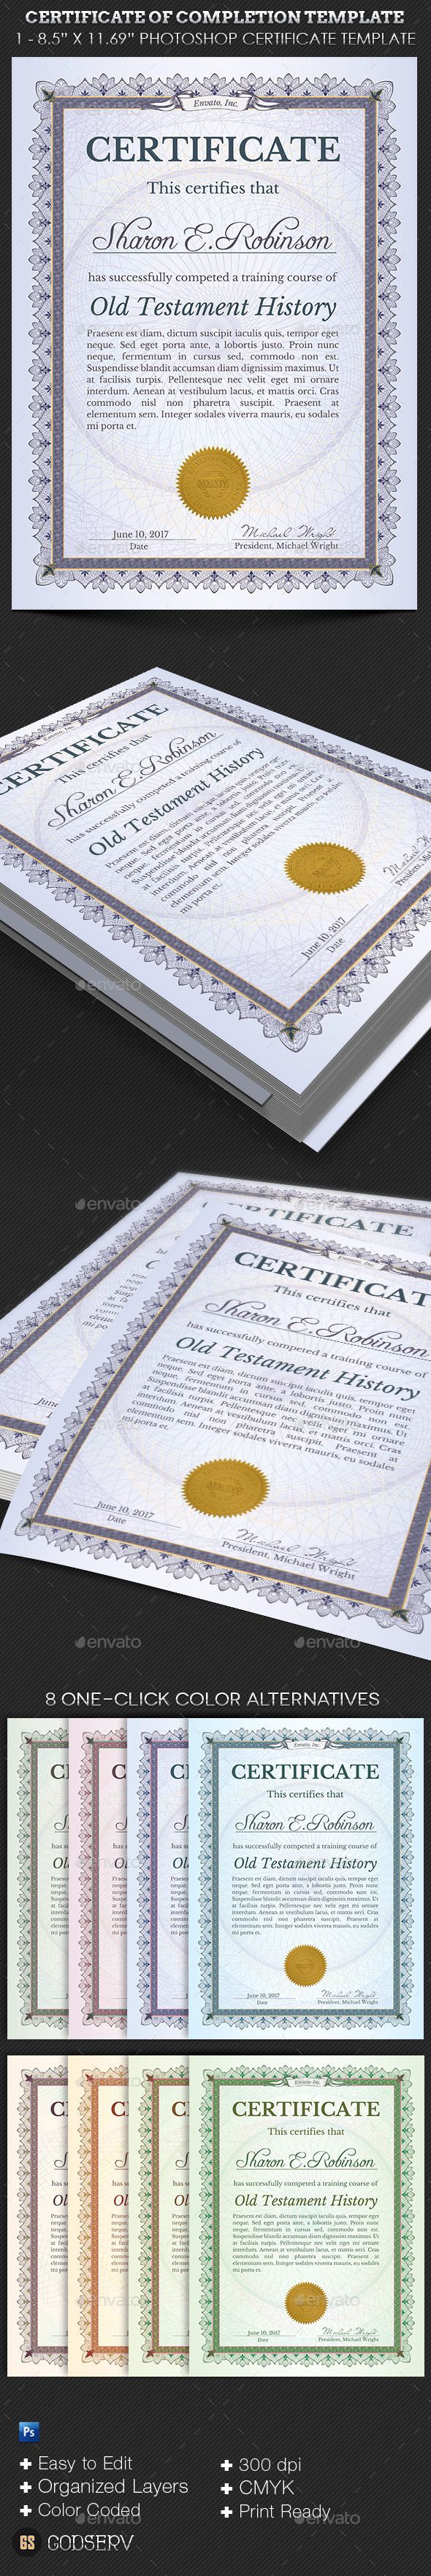 Certificate of Completion Template #ornament #purple  • Download here → https://graphicriver.net/item/certificate-of-completion-template/12265431?ref=pxcr